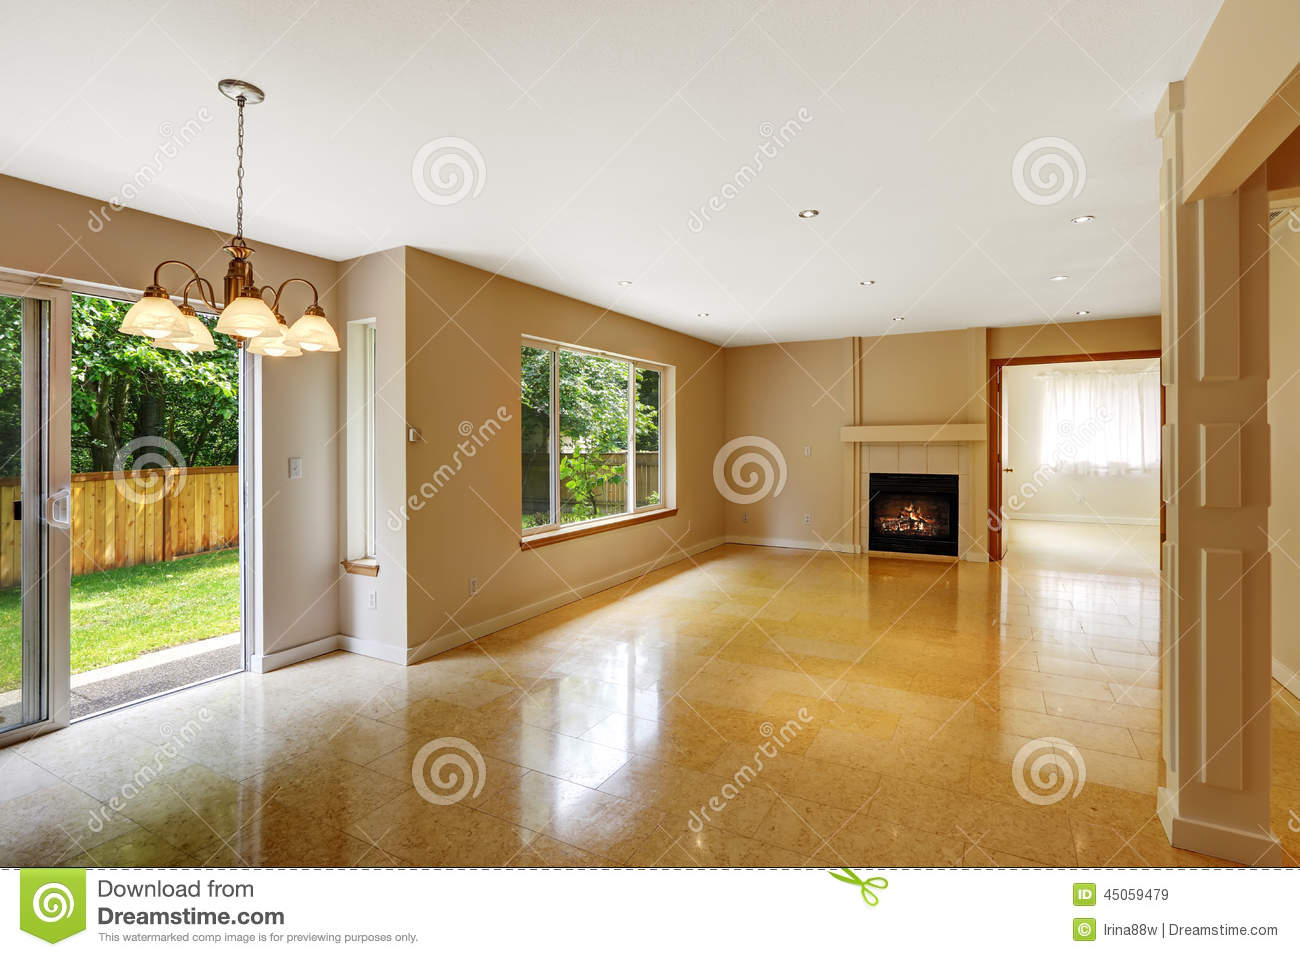 Empty Living Room With Shiny Marble Tile Floor And